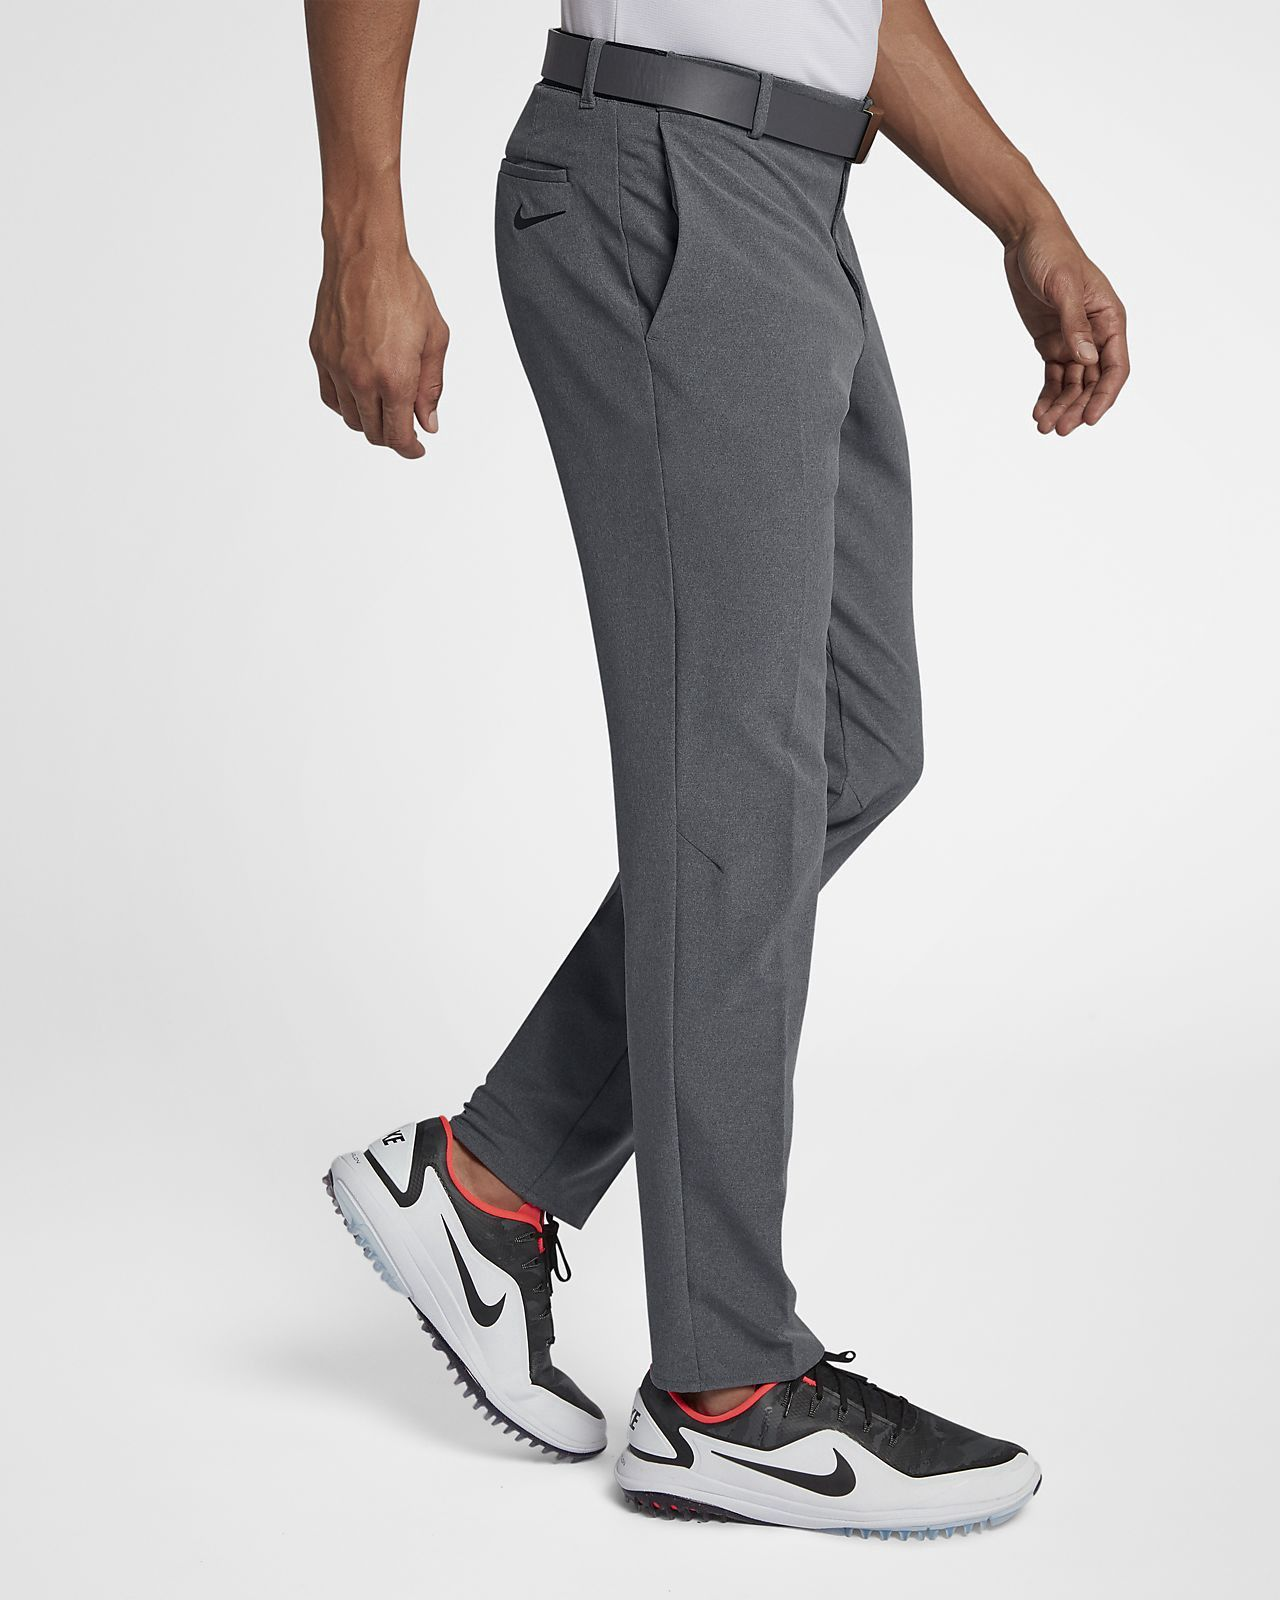 huge discount fashion 2019 best Nike Flex Men's Slim Fit Golf Pants - 30/30 in 2019 | Golf ...